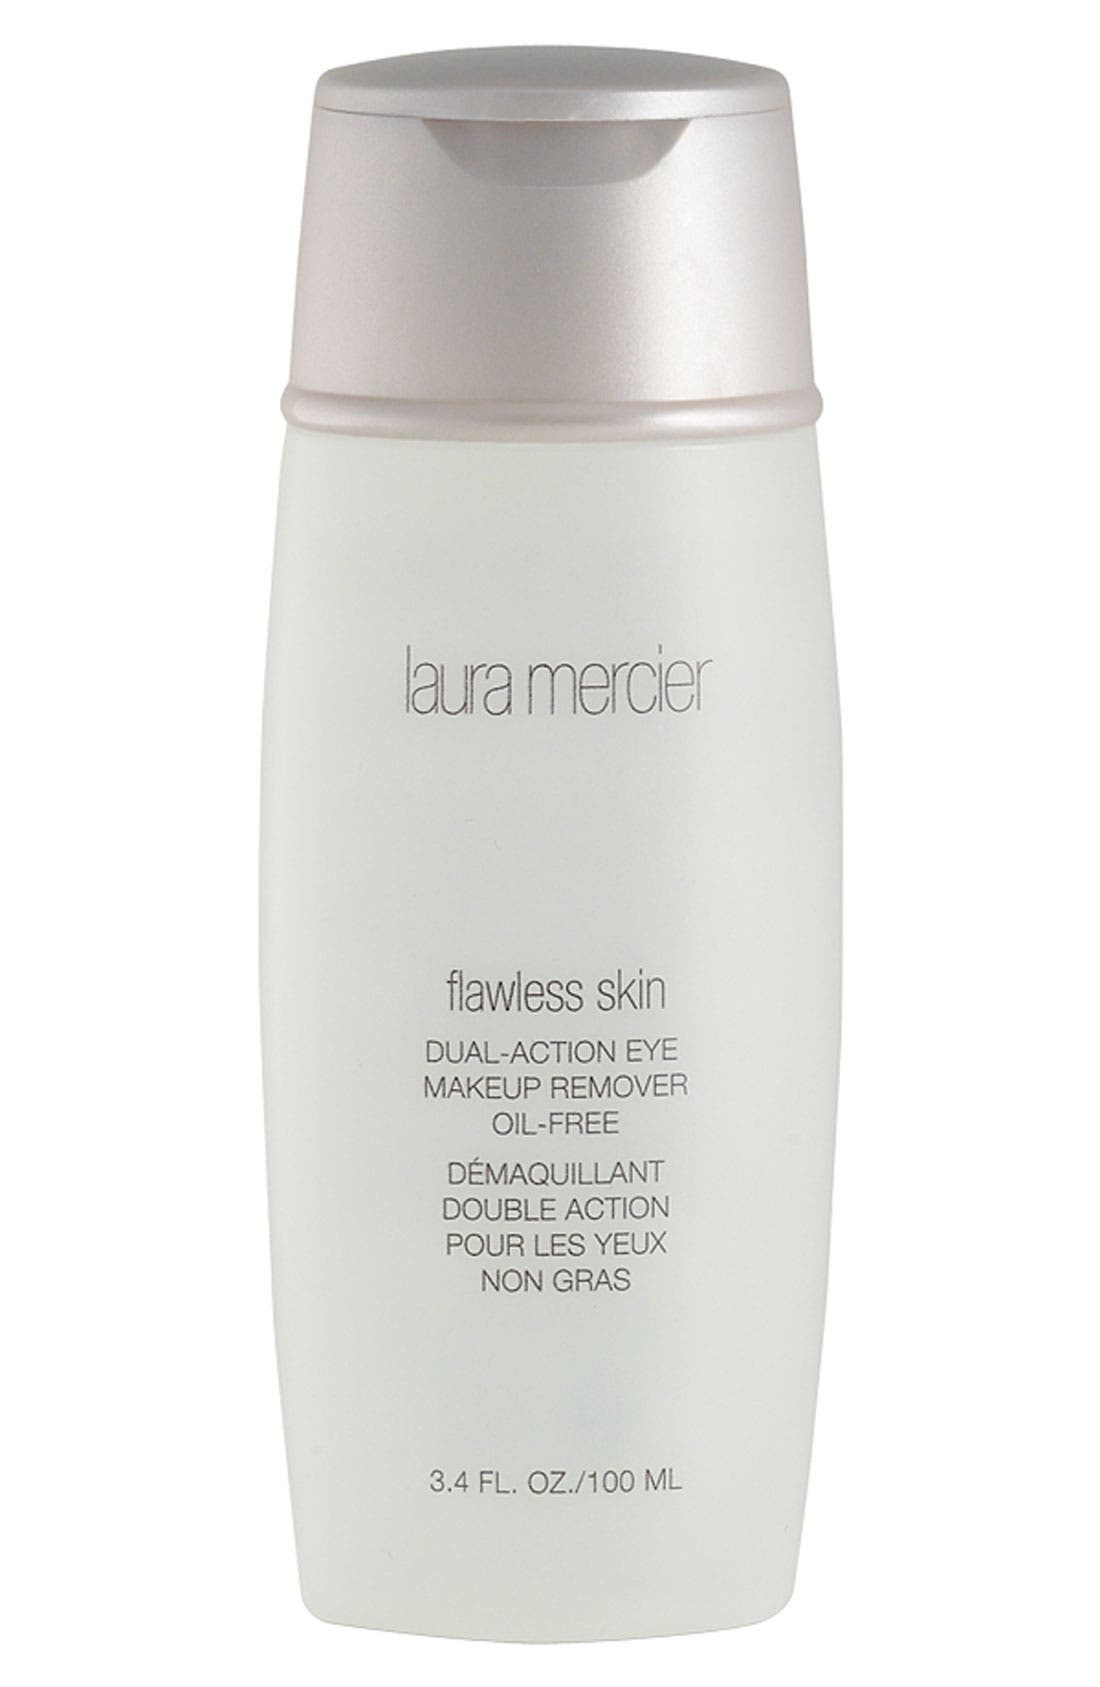 Laura Mercier 'Flawless Skin' Dual-Action Eye Makeup Remover